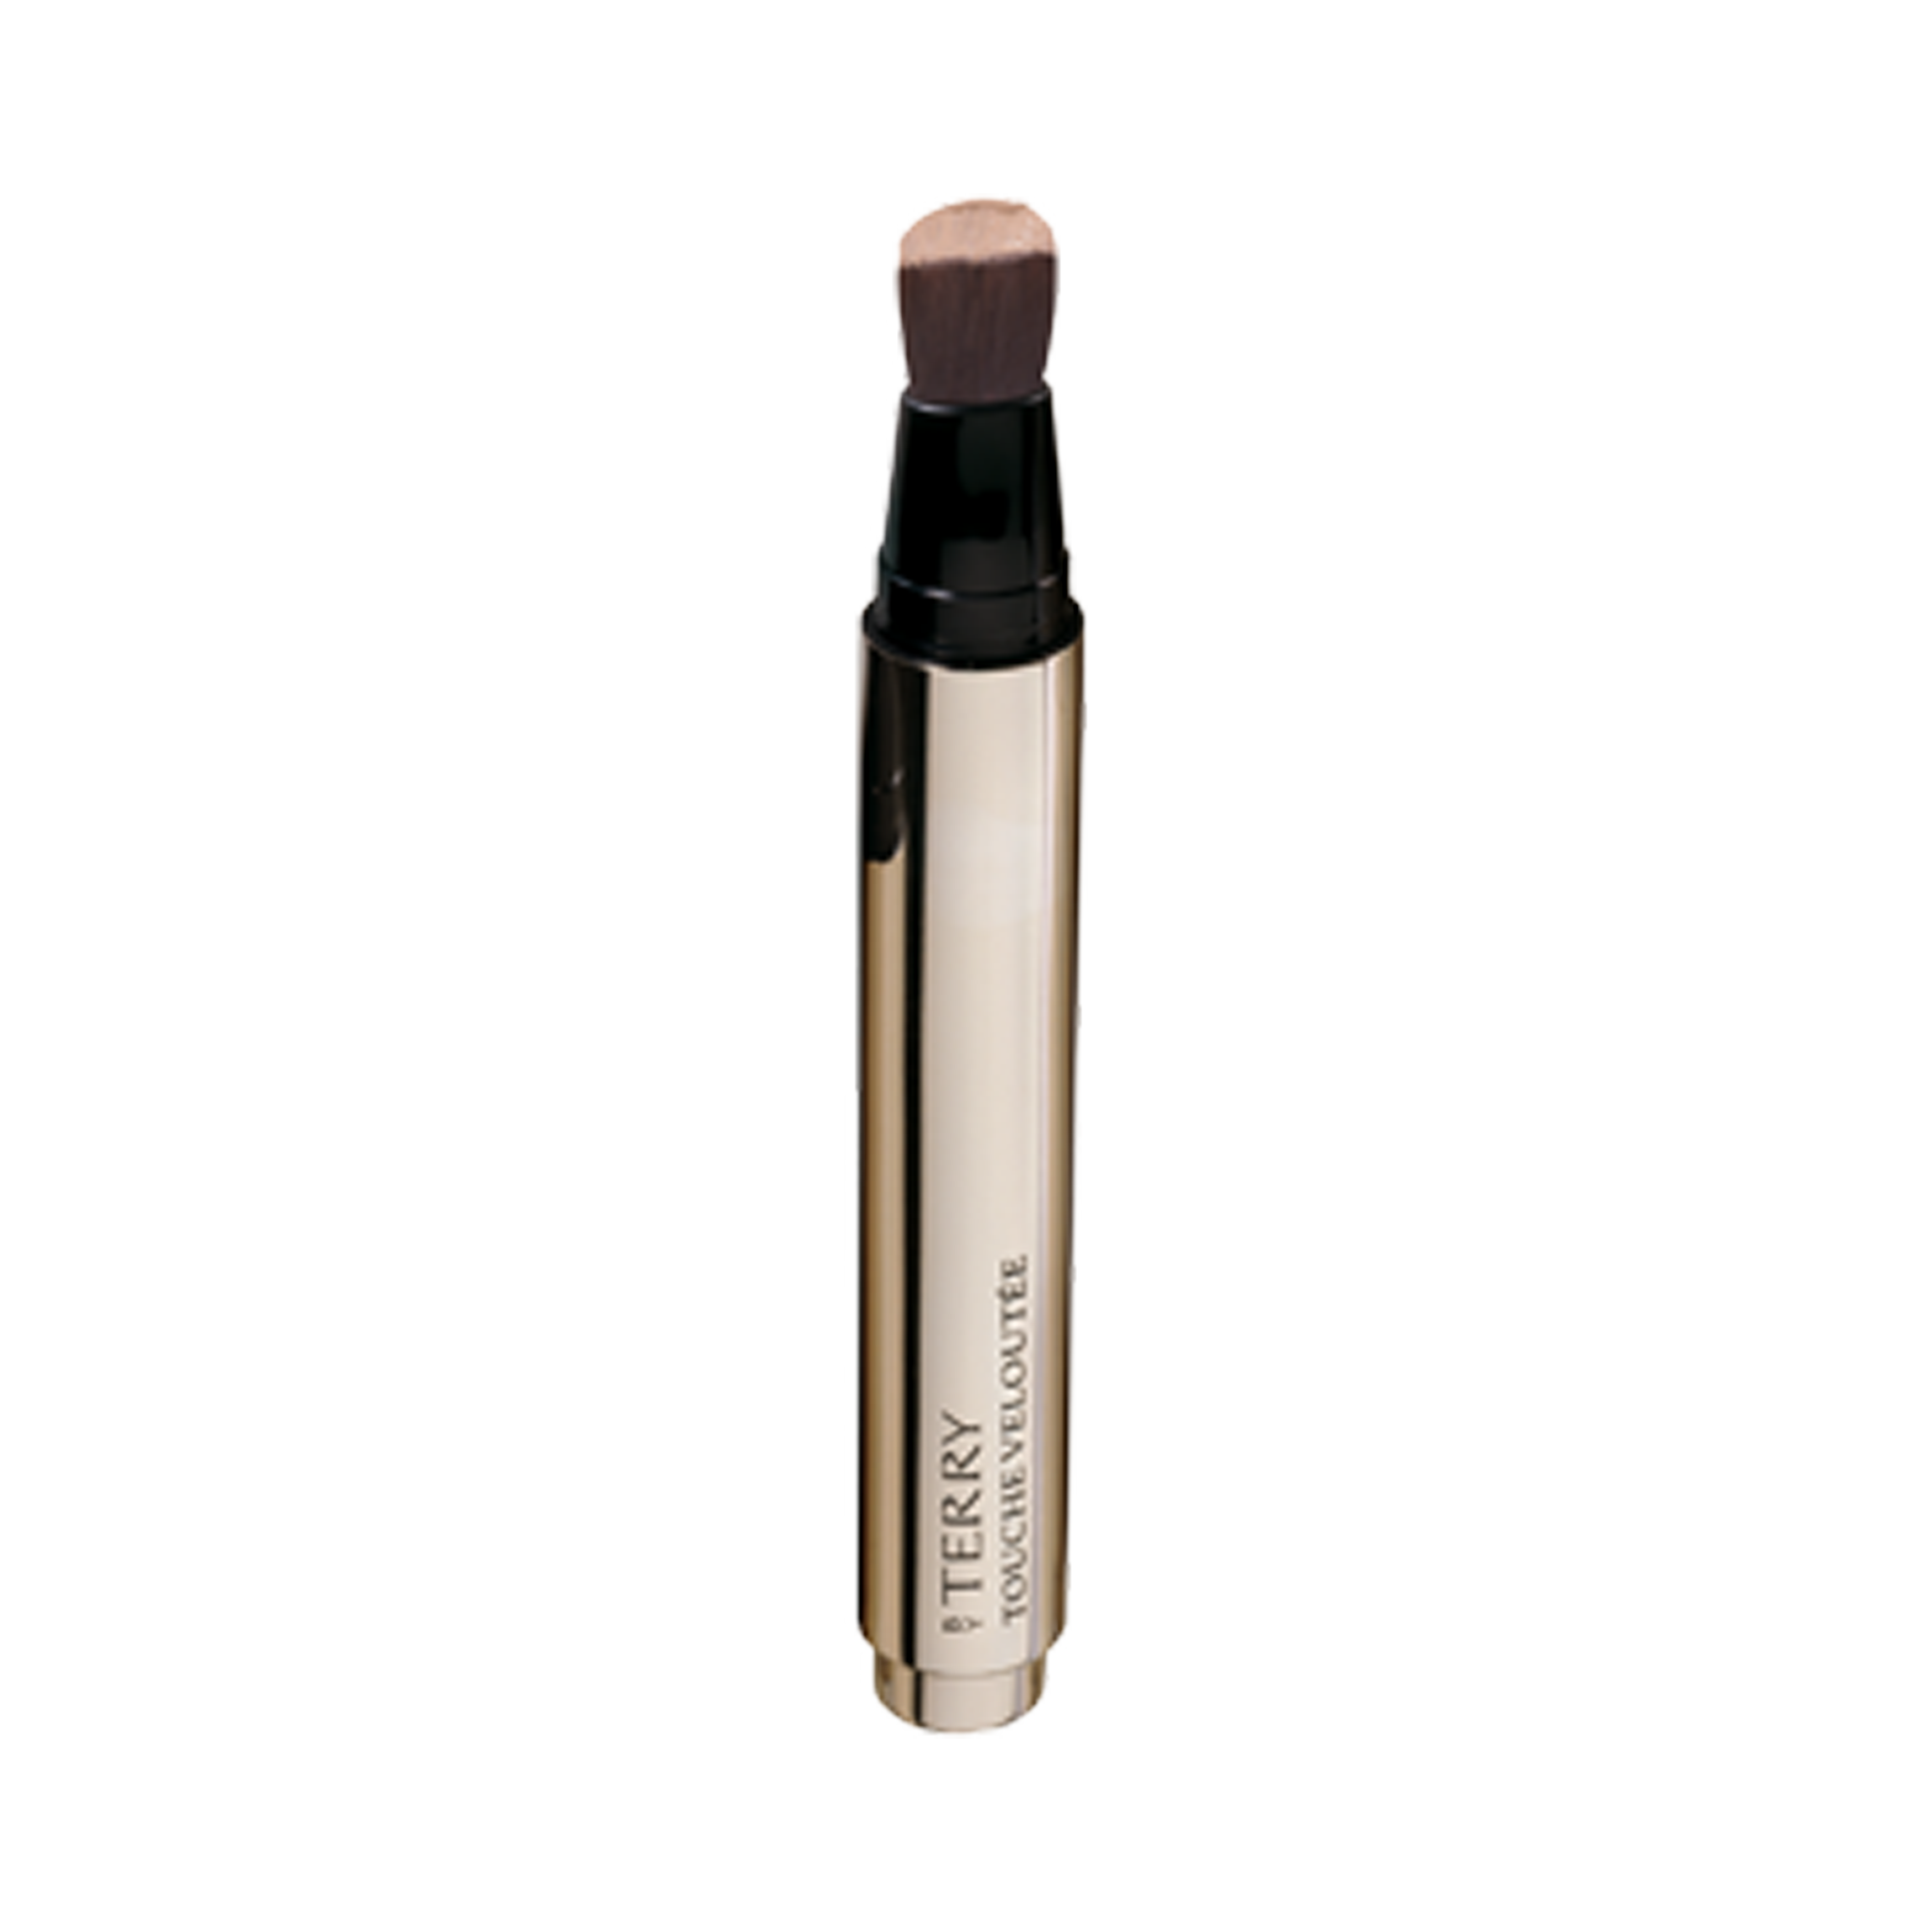 Touche Veloutee Highlighting Concealer Brush 2Cream